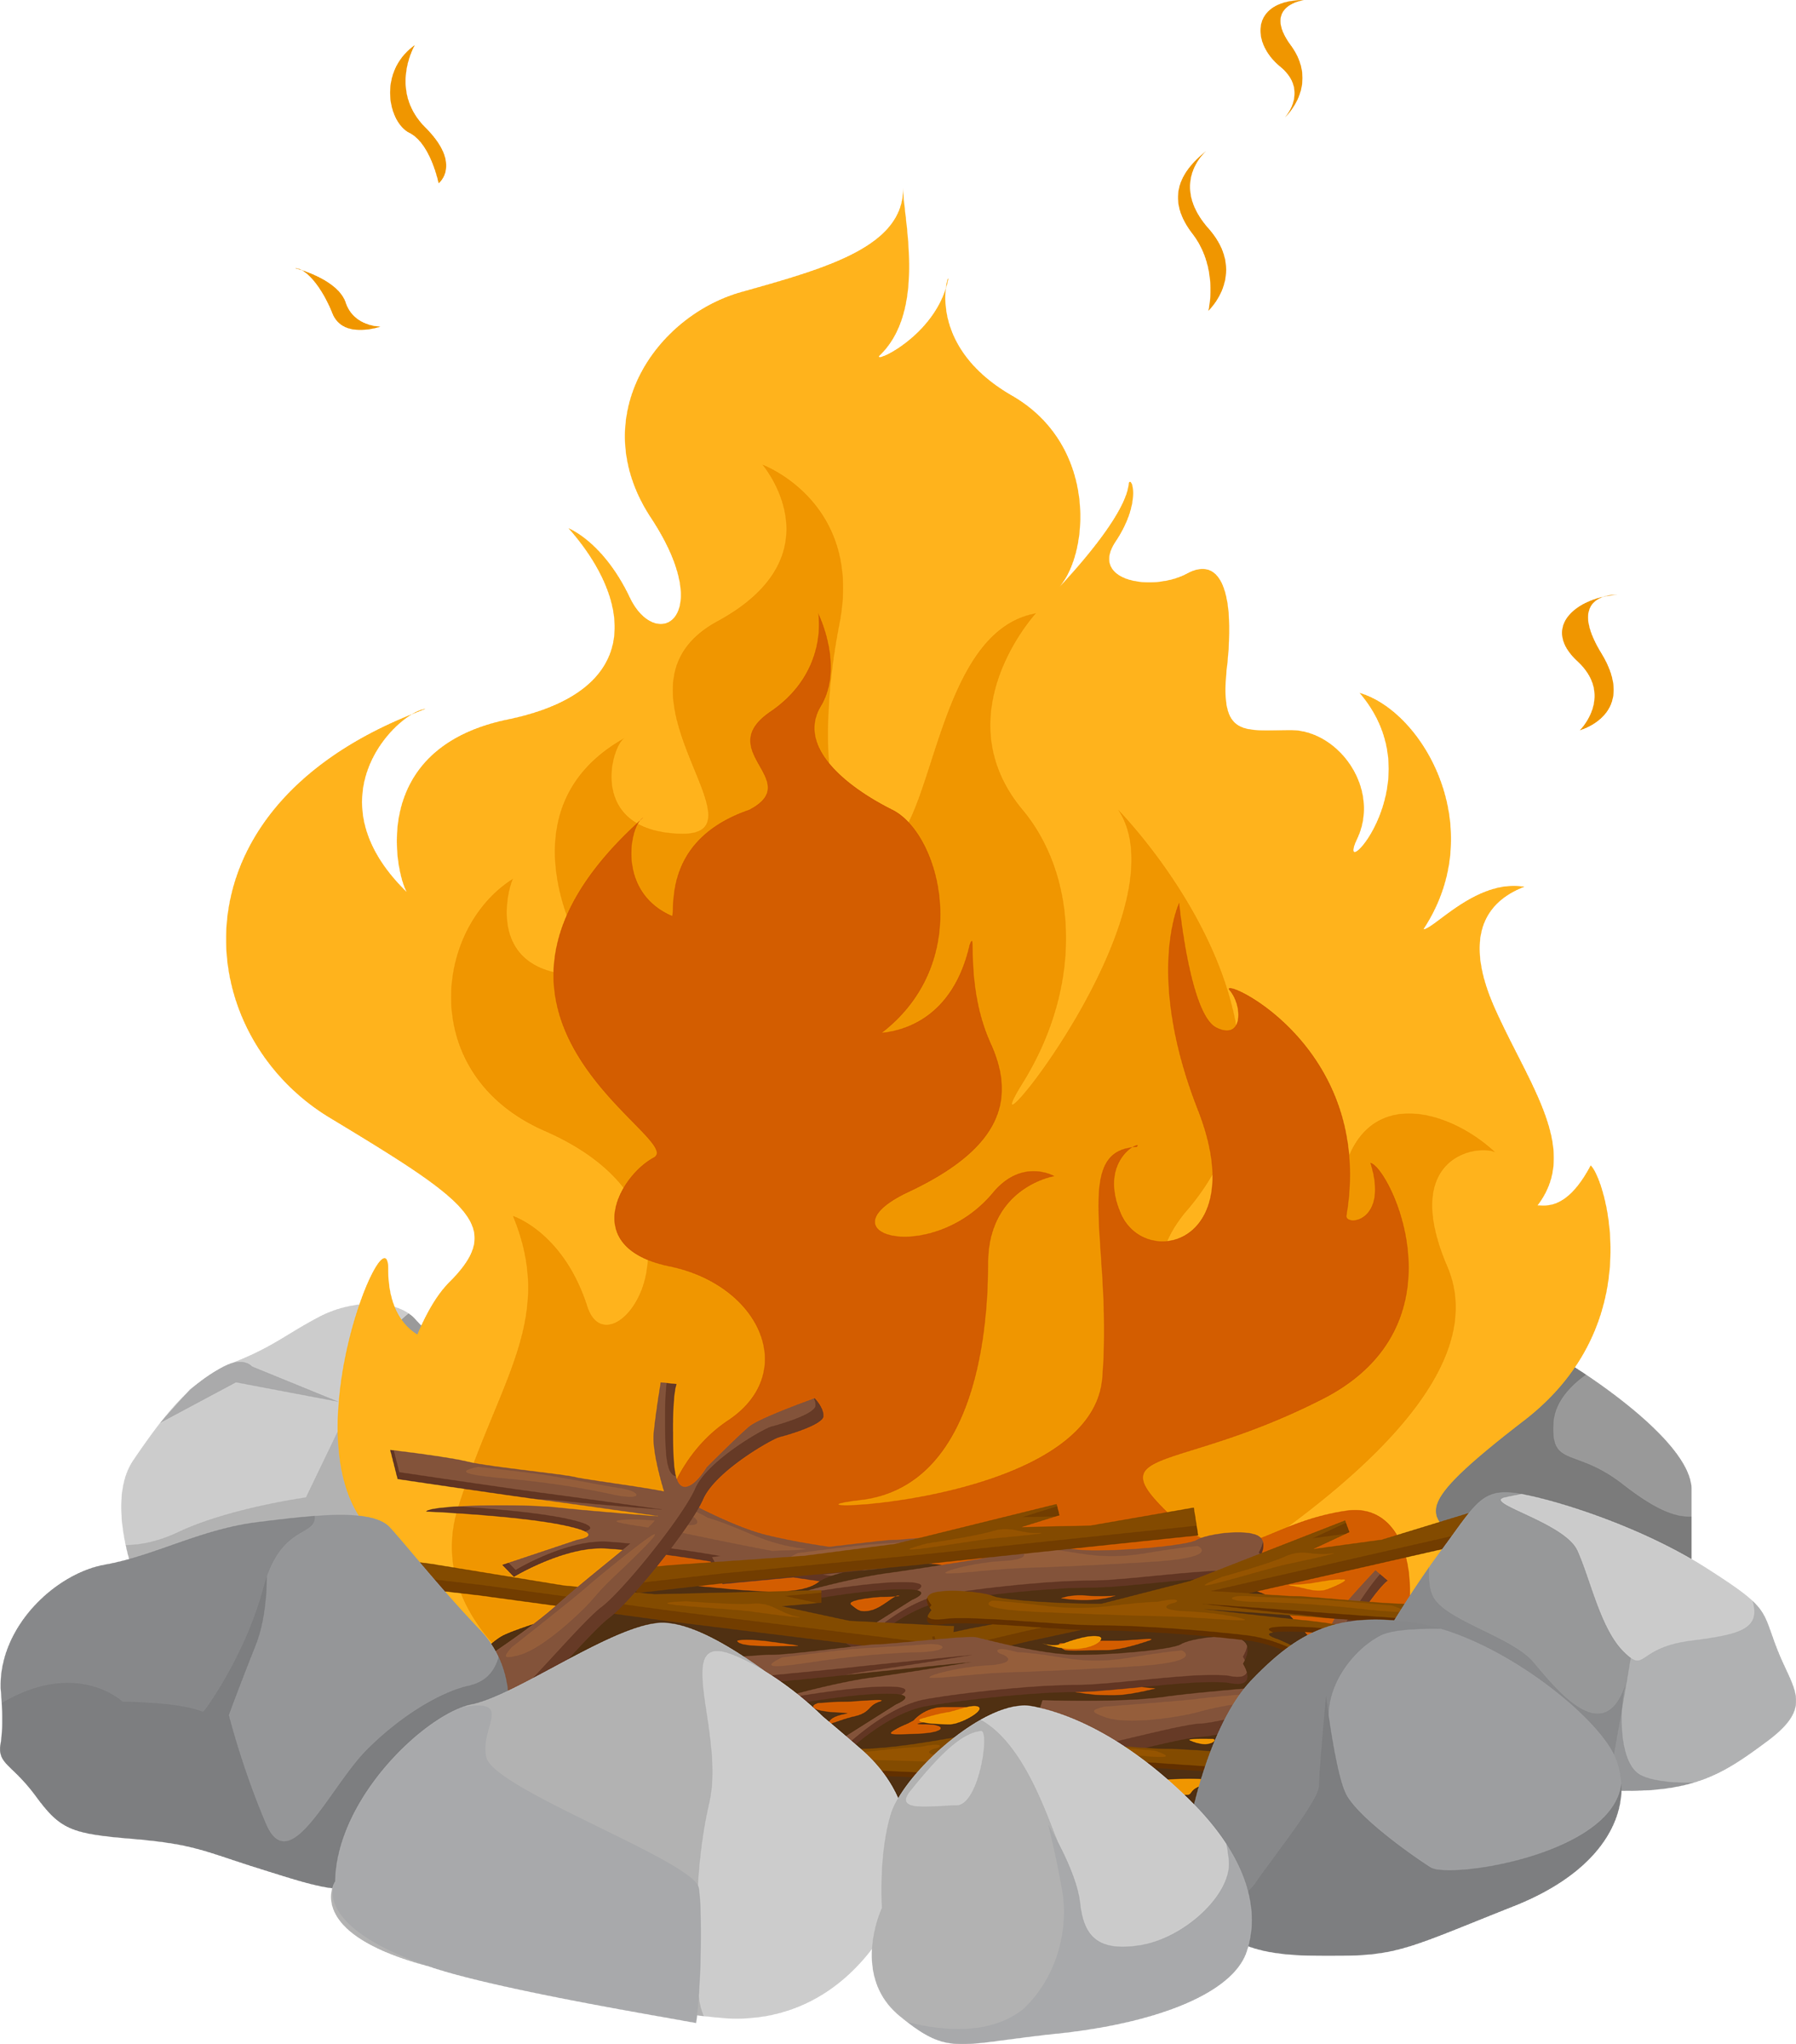 Campfire clipart. Png images transparent free